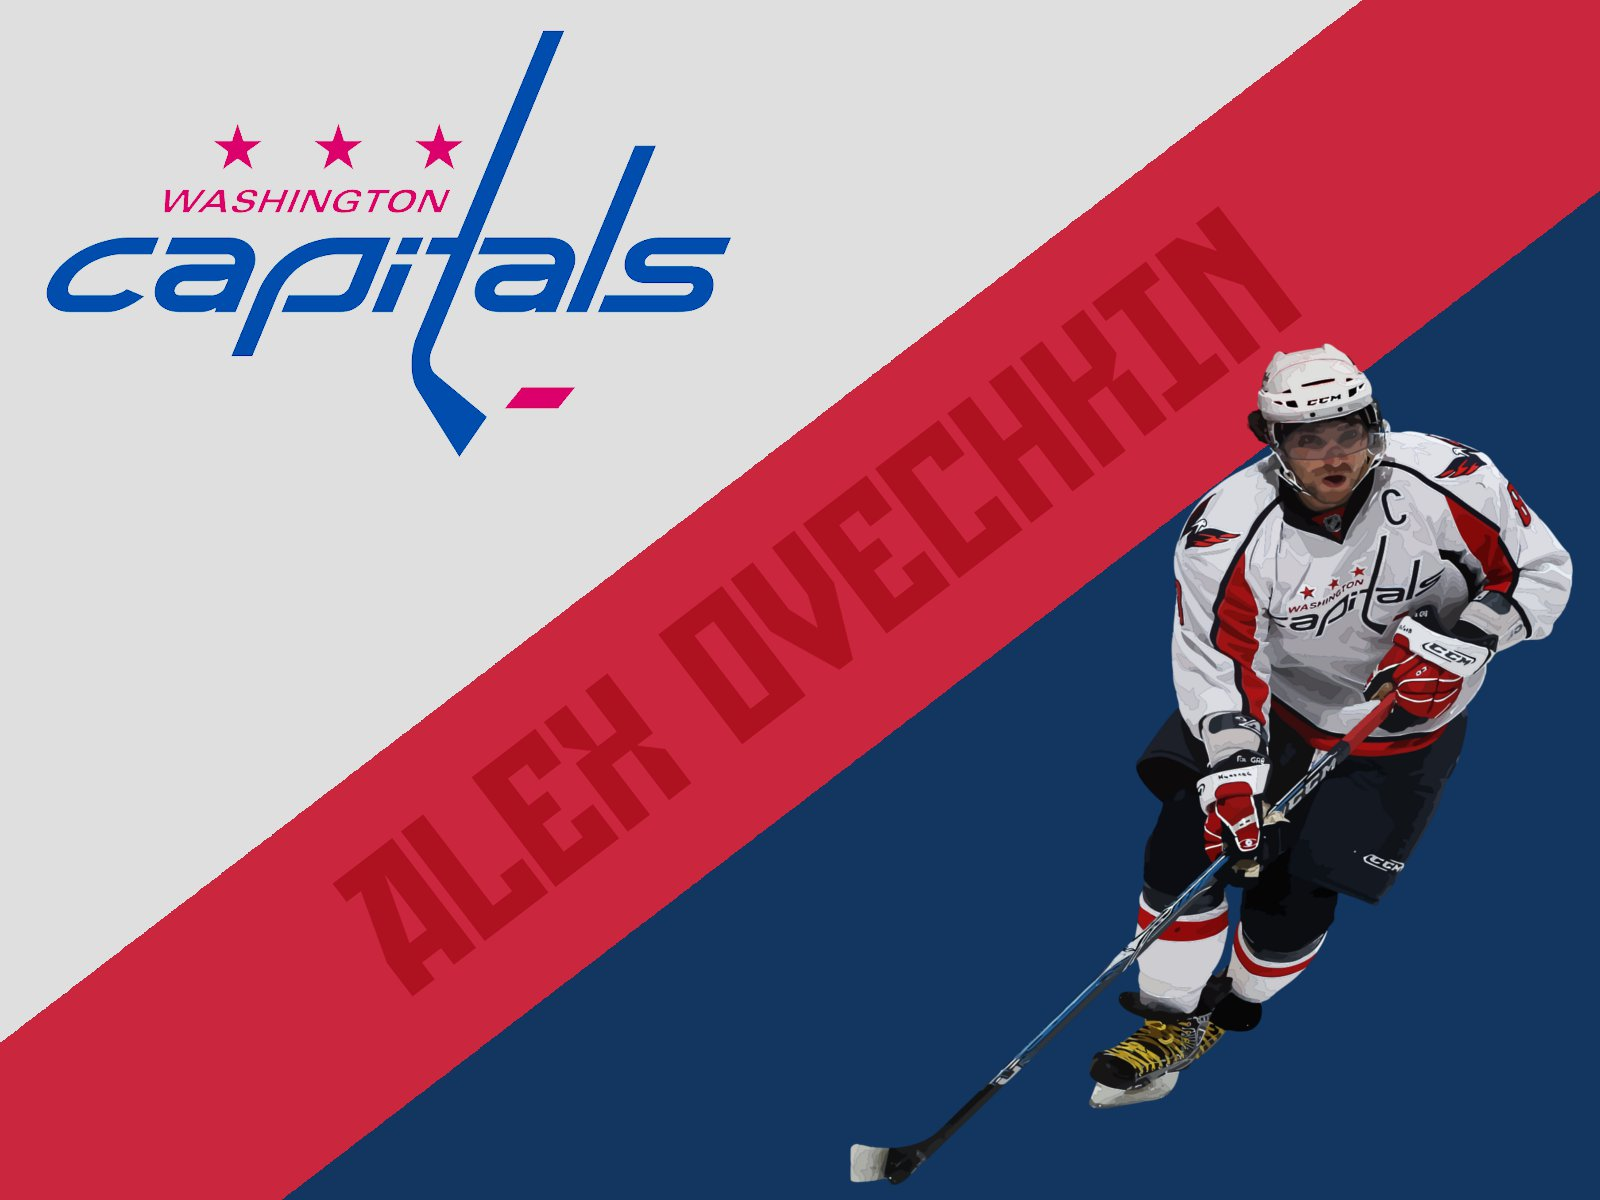 free washington capitals wallpaper wallpapersafari